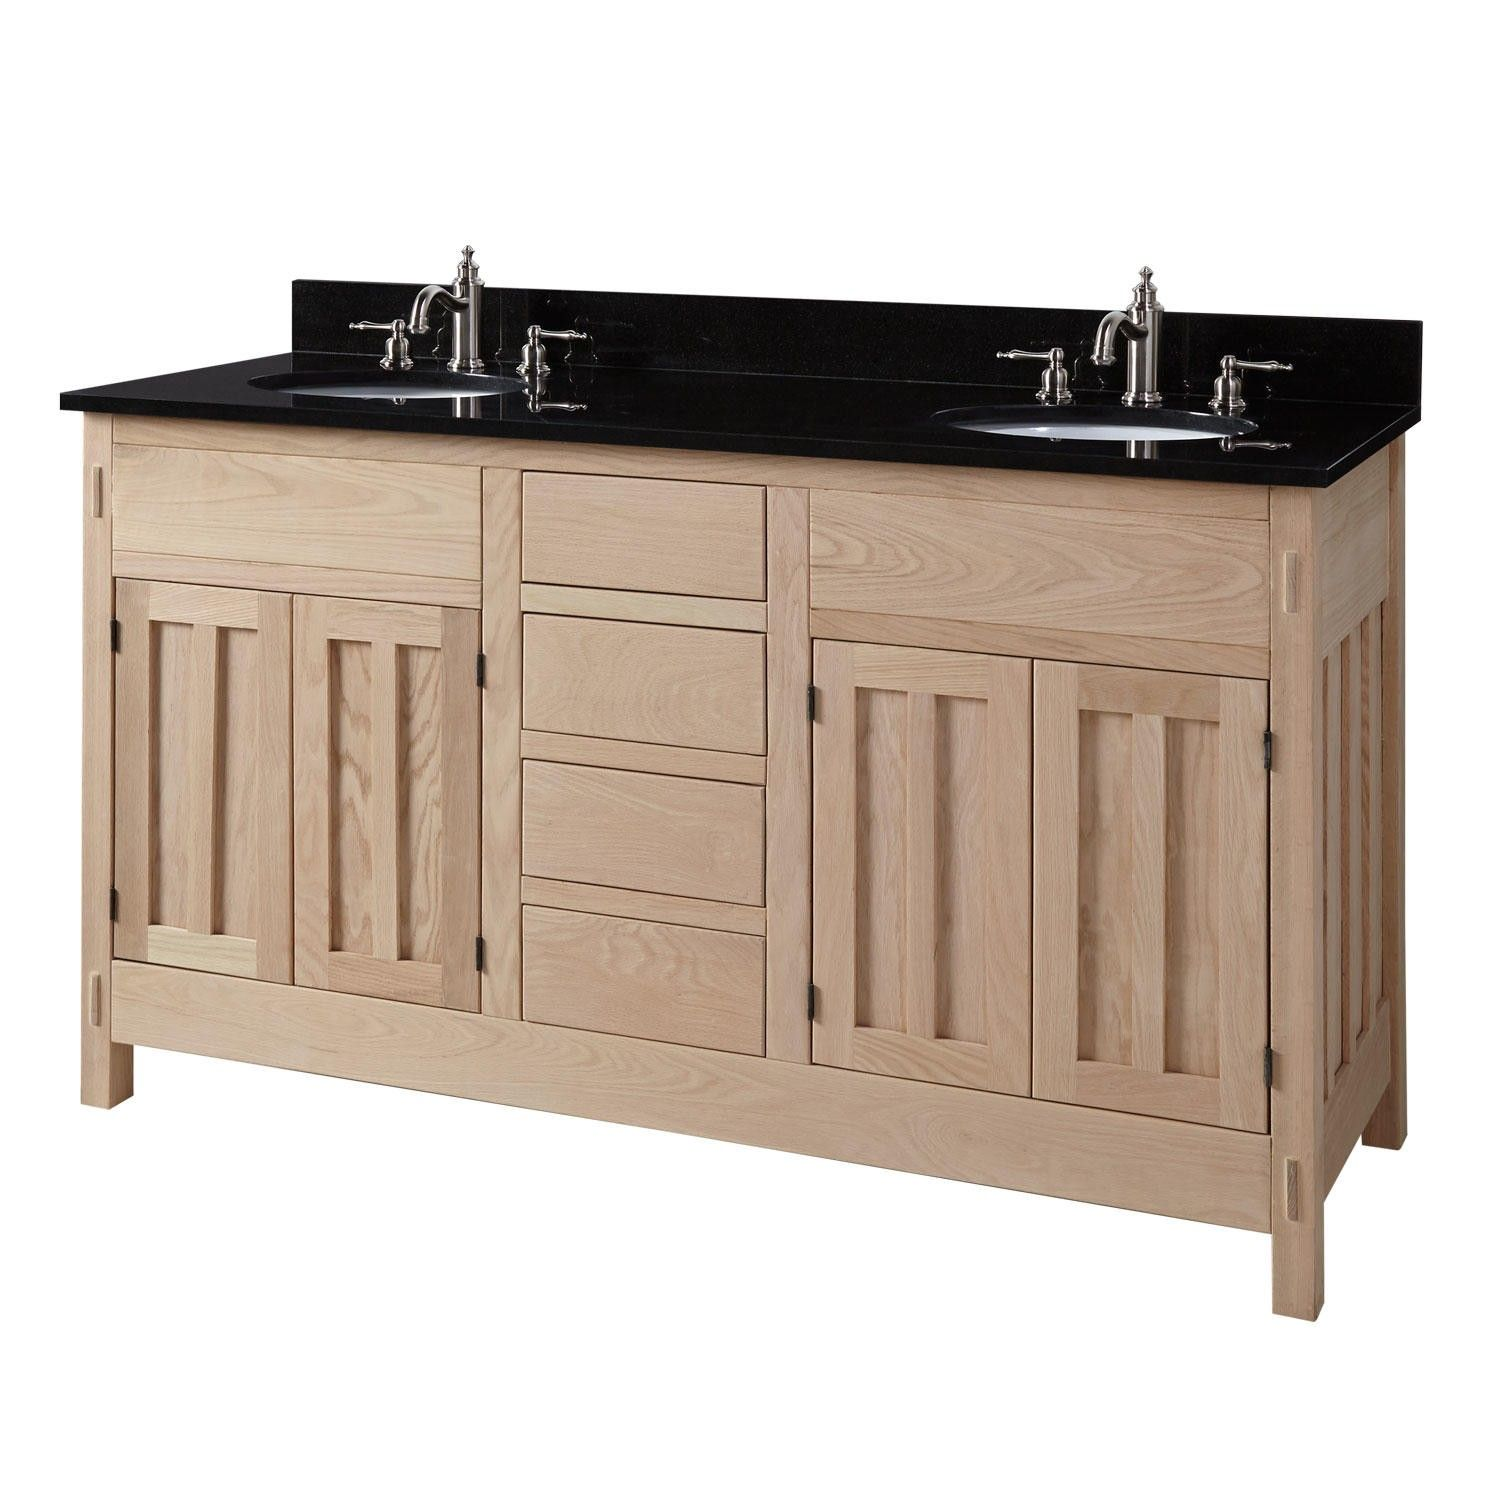 1449 95 Bathroom Double Vanity With White Marble Top Paint Laquer Black 60 Unfinished Mission Hardwood Unfinished Bathroom Vanities Vanity Bathroom Vanity